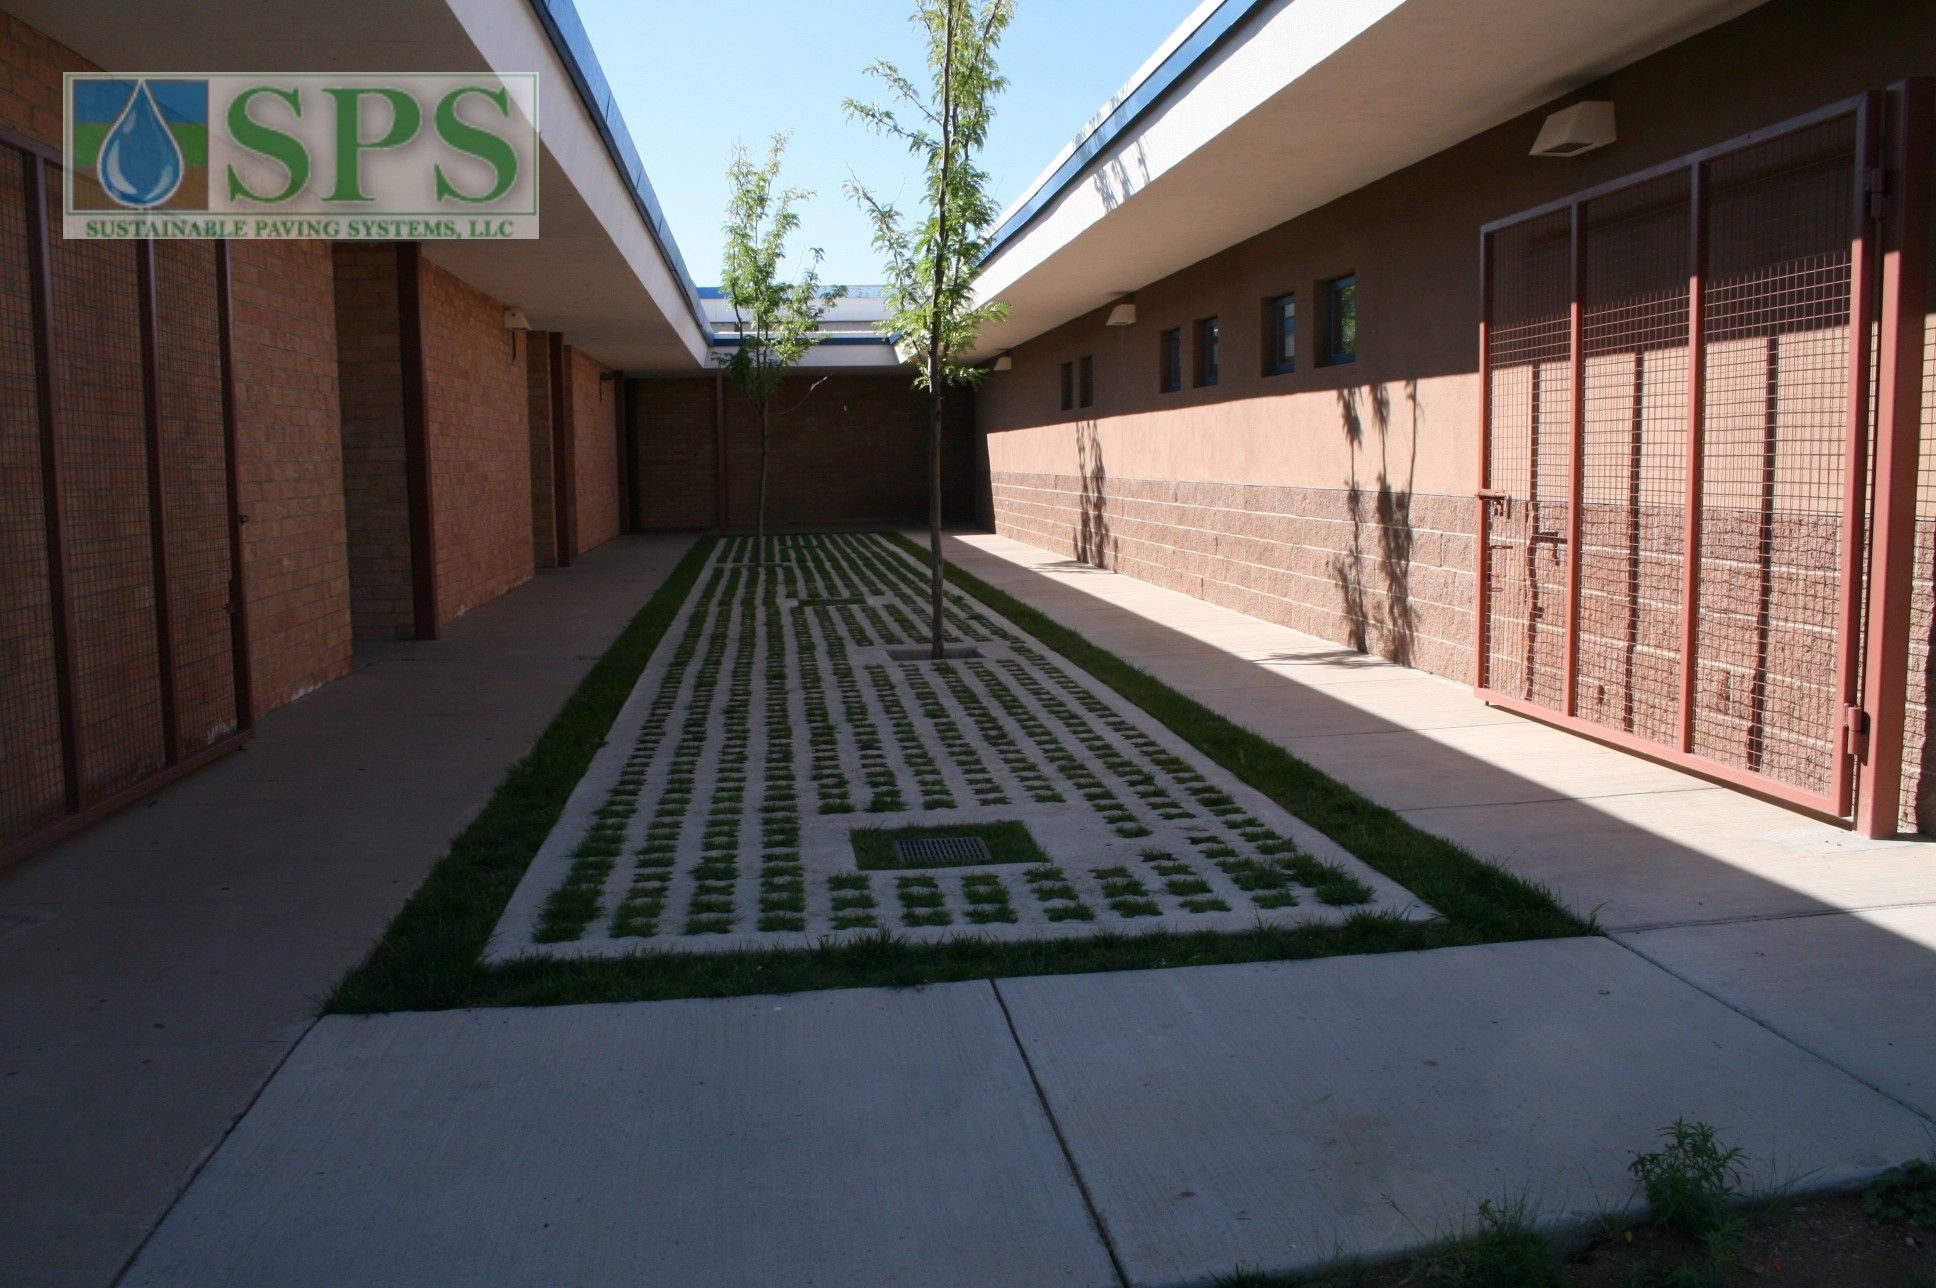 Grasscrete Partially Concealed System At St Mikes School View Of Courtyard Storm Water Management_01